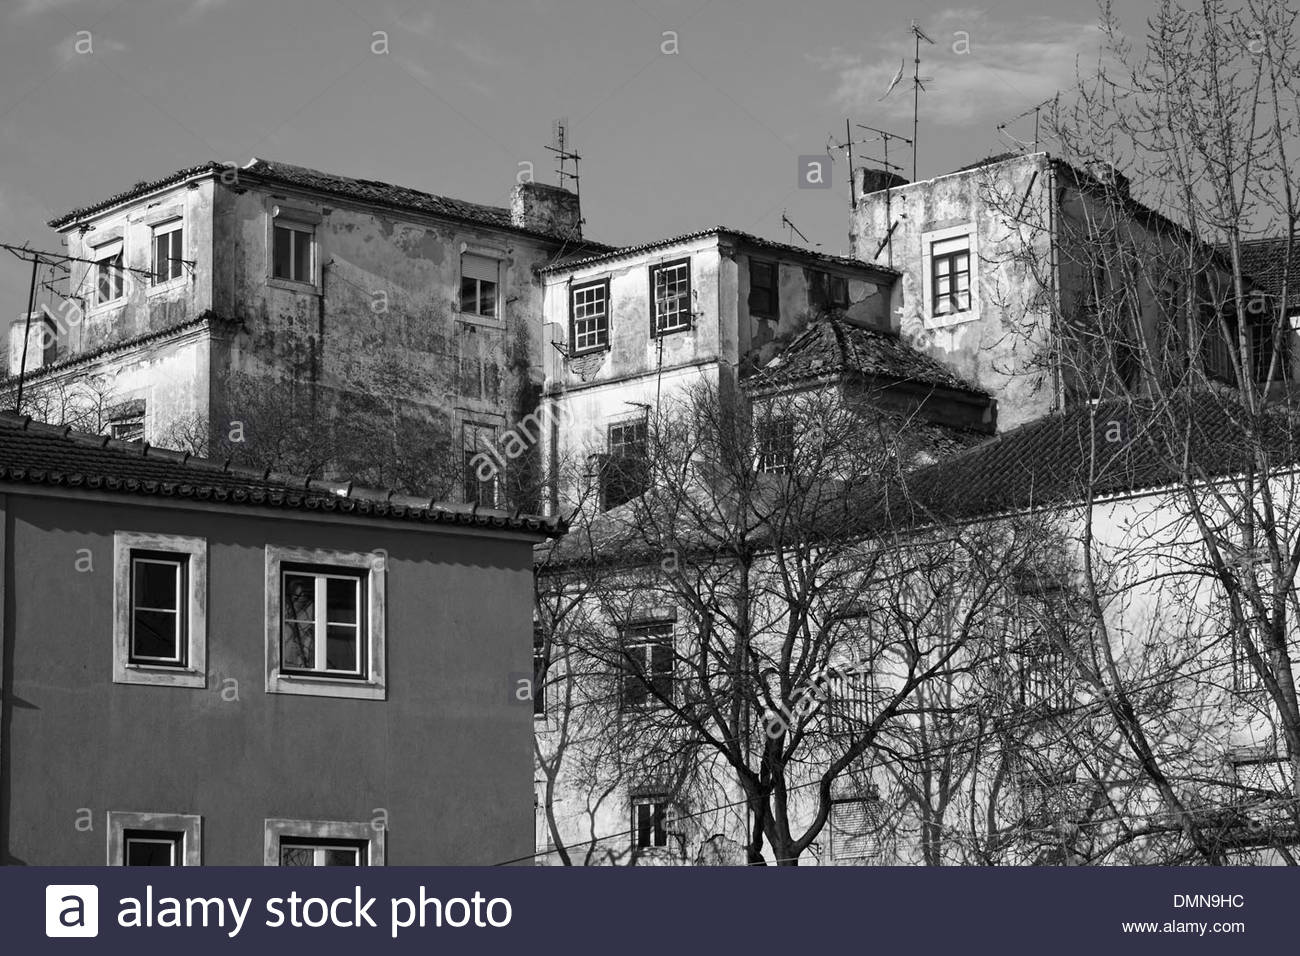 Black and white image of old building fronts with bare trees, Alfama, Lisbon, Portugal - Stock Image